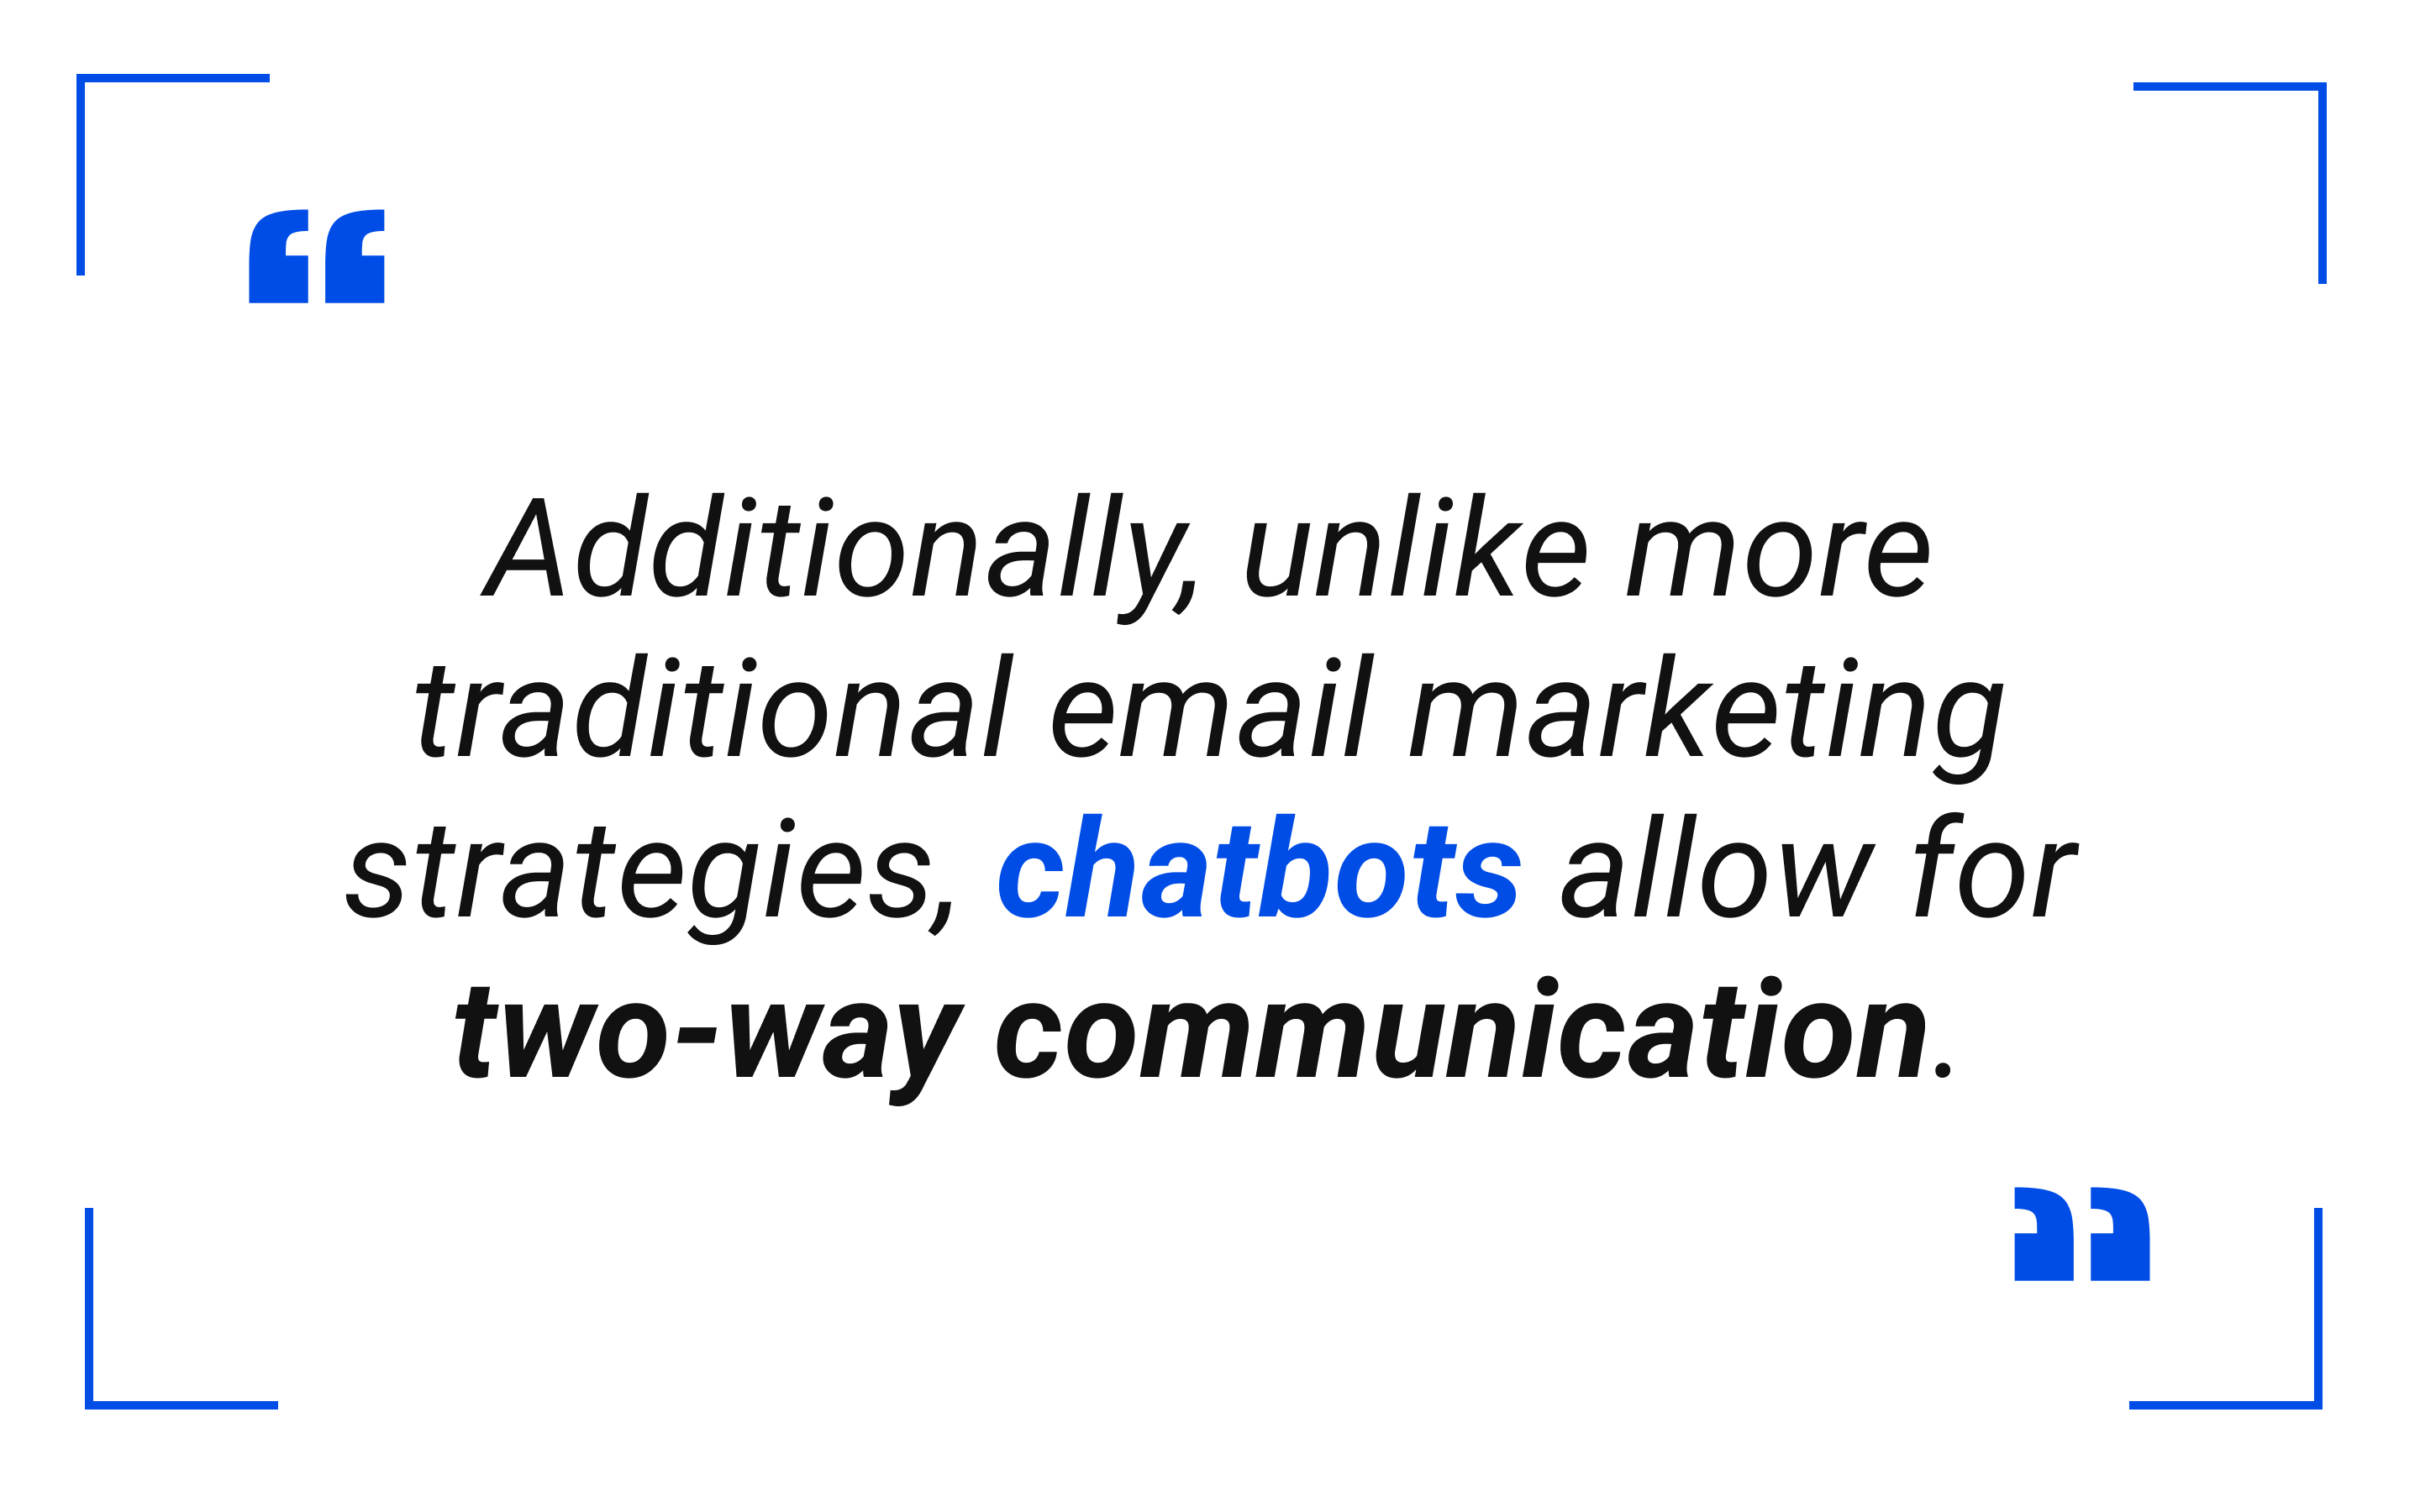 Chatbots allow for two-way communication